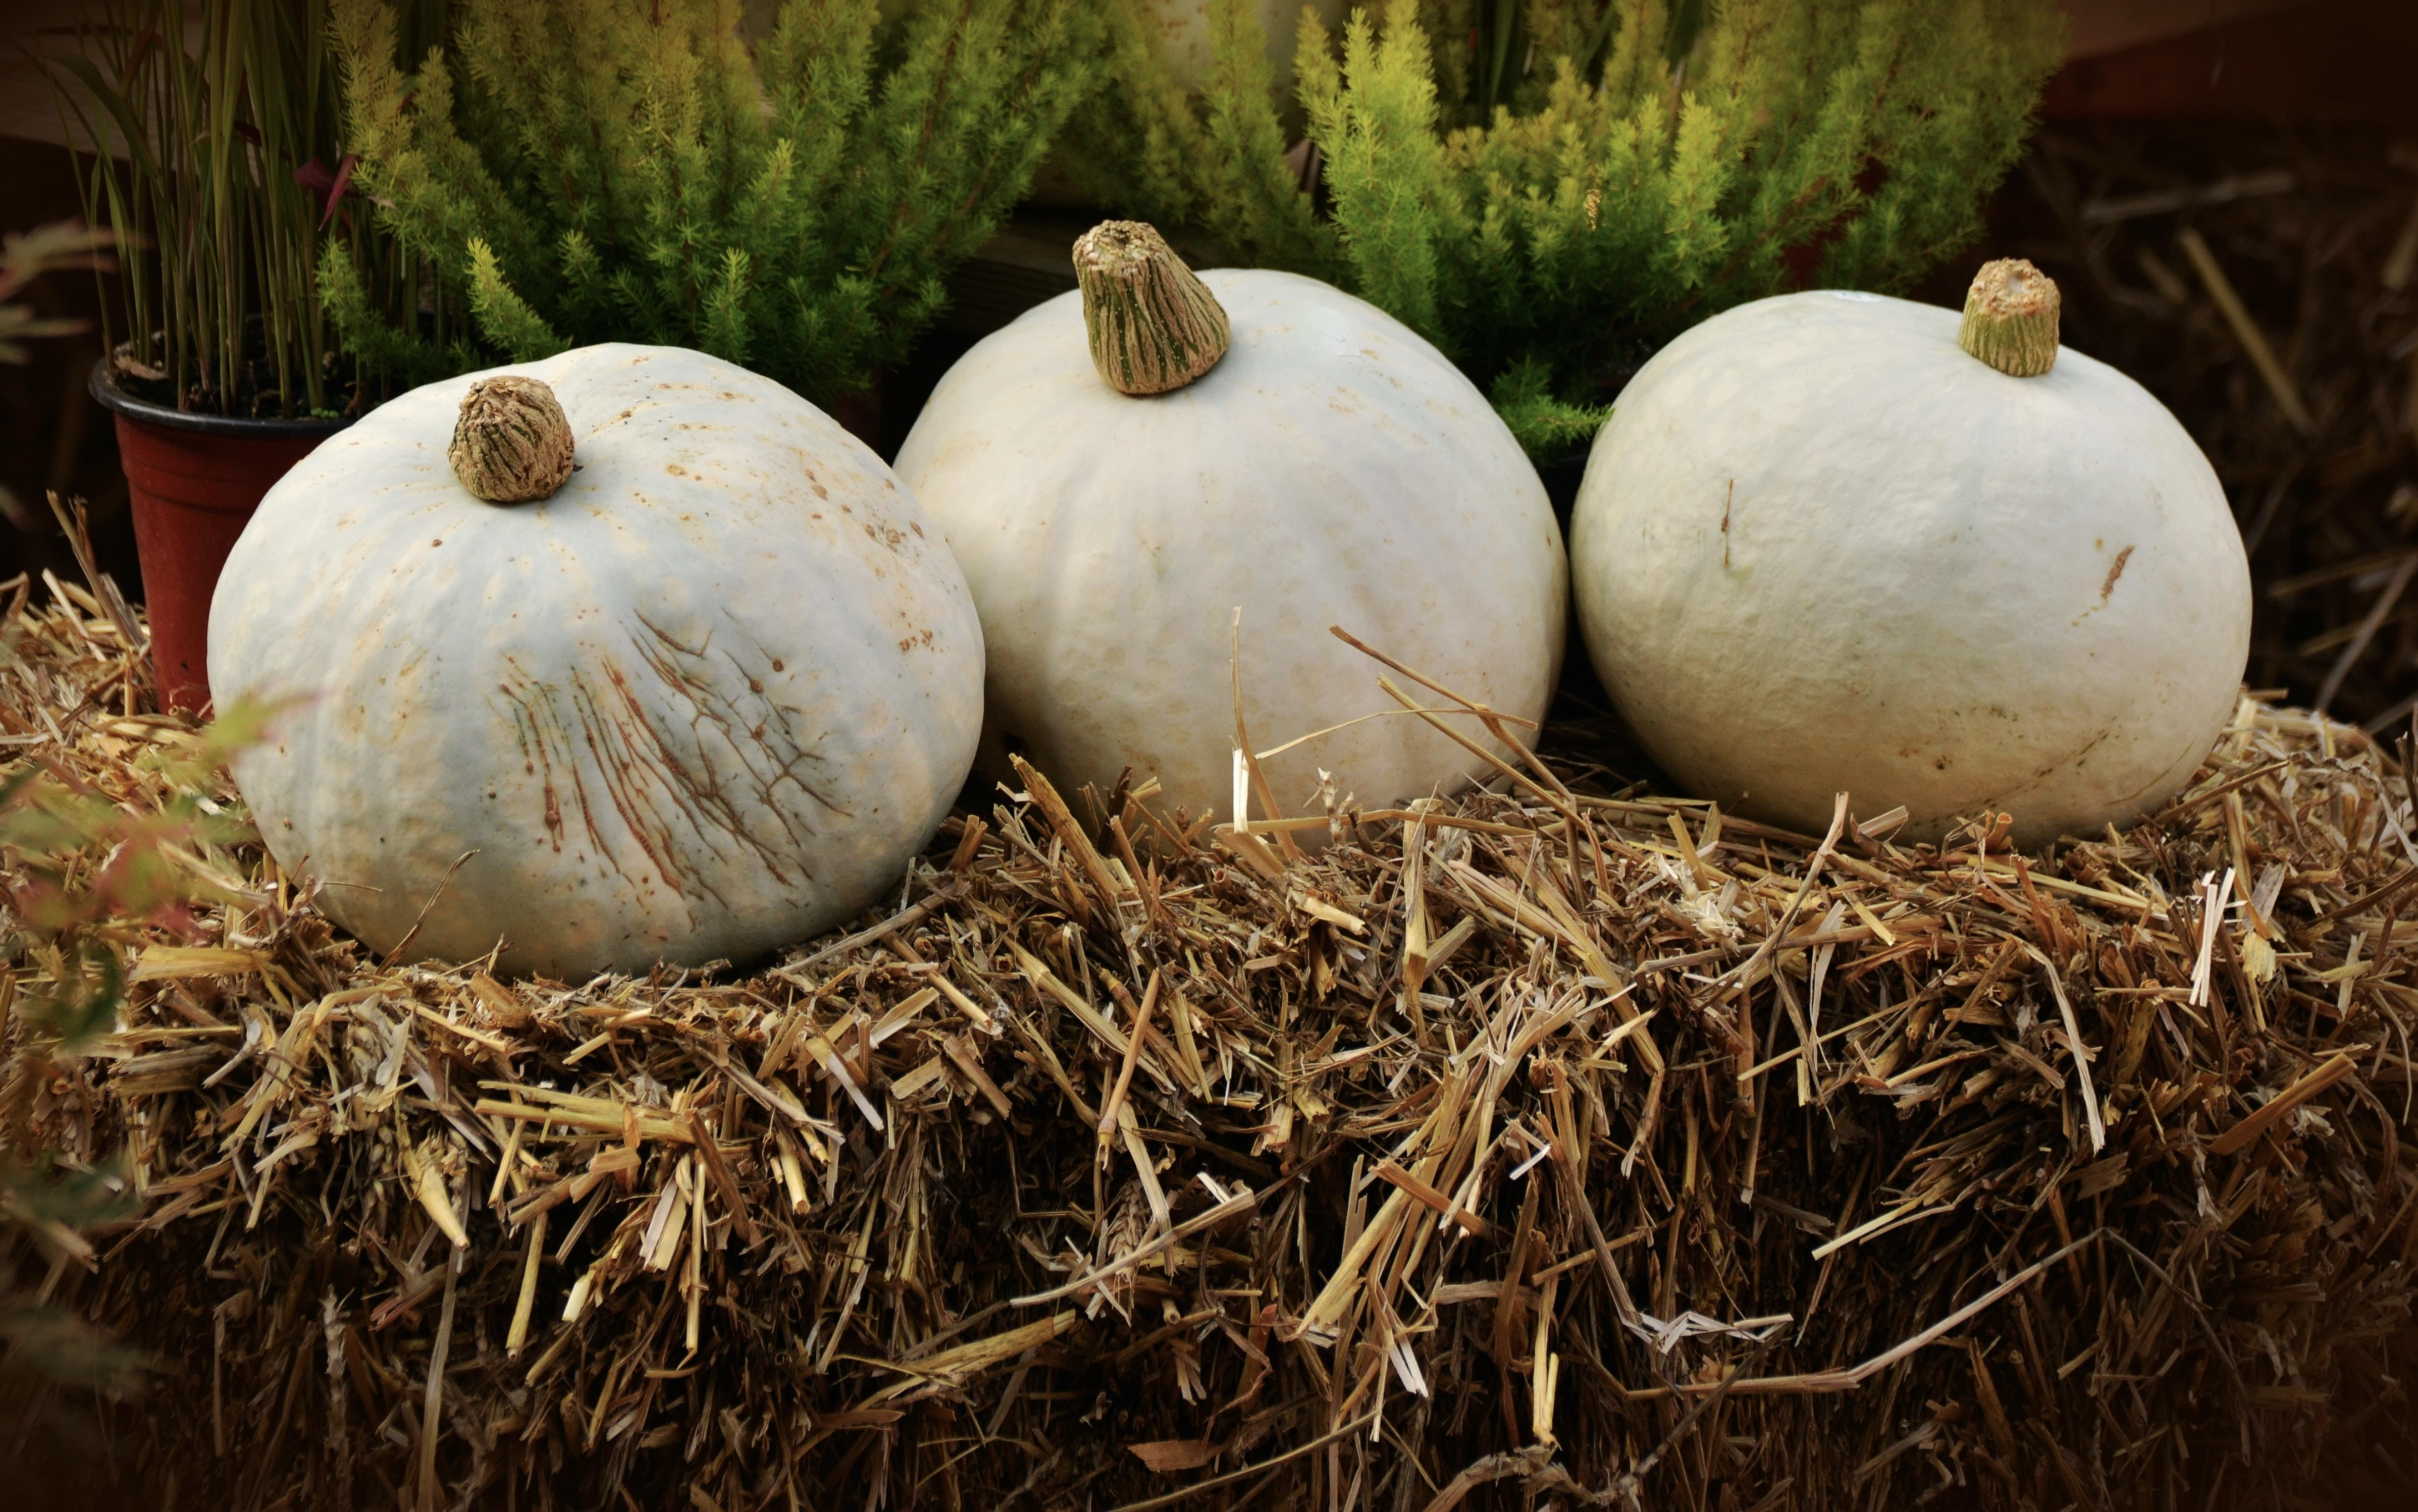 NASH Nine: The Best Places Around Nashville to do Your Pumpkin Picking